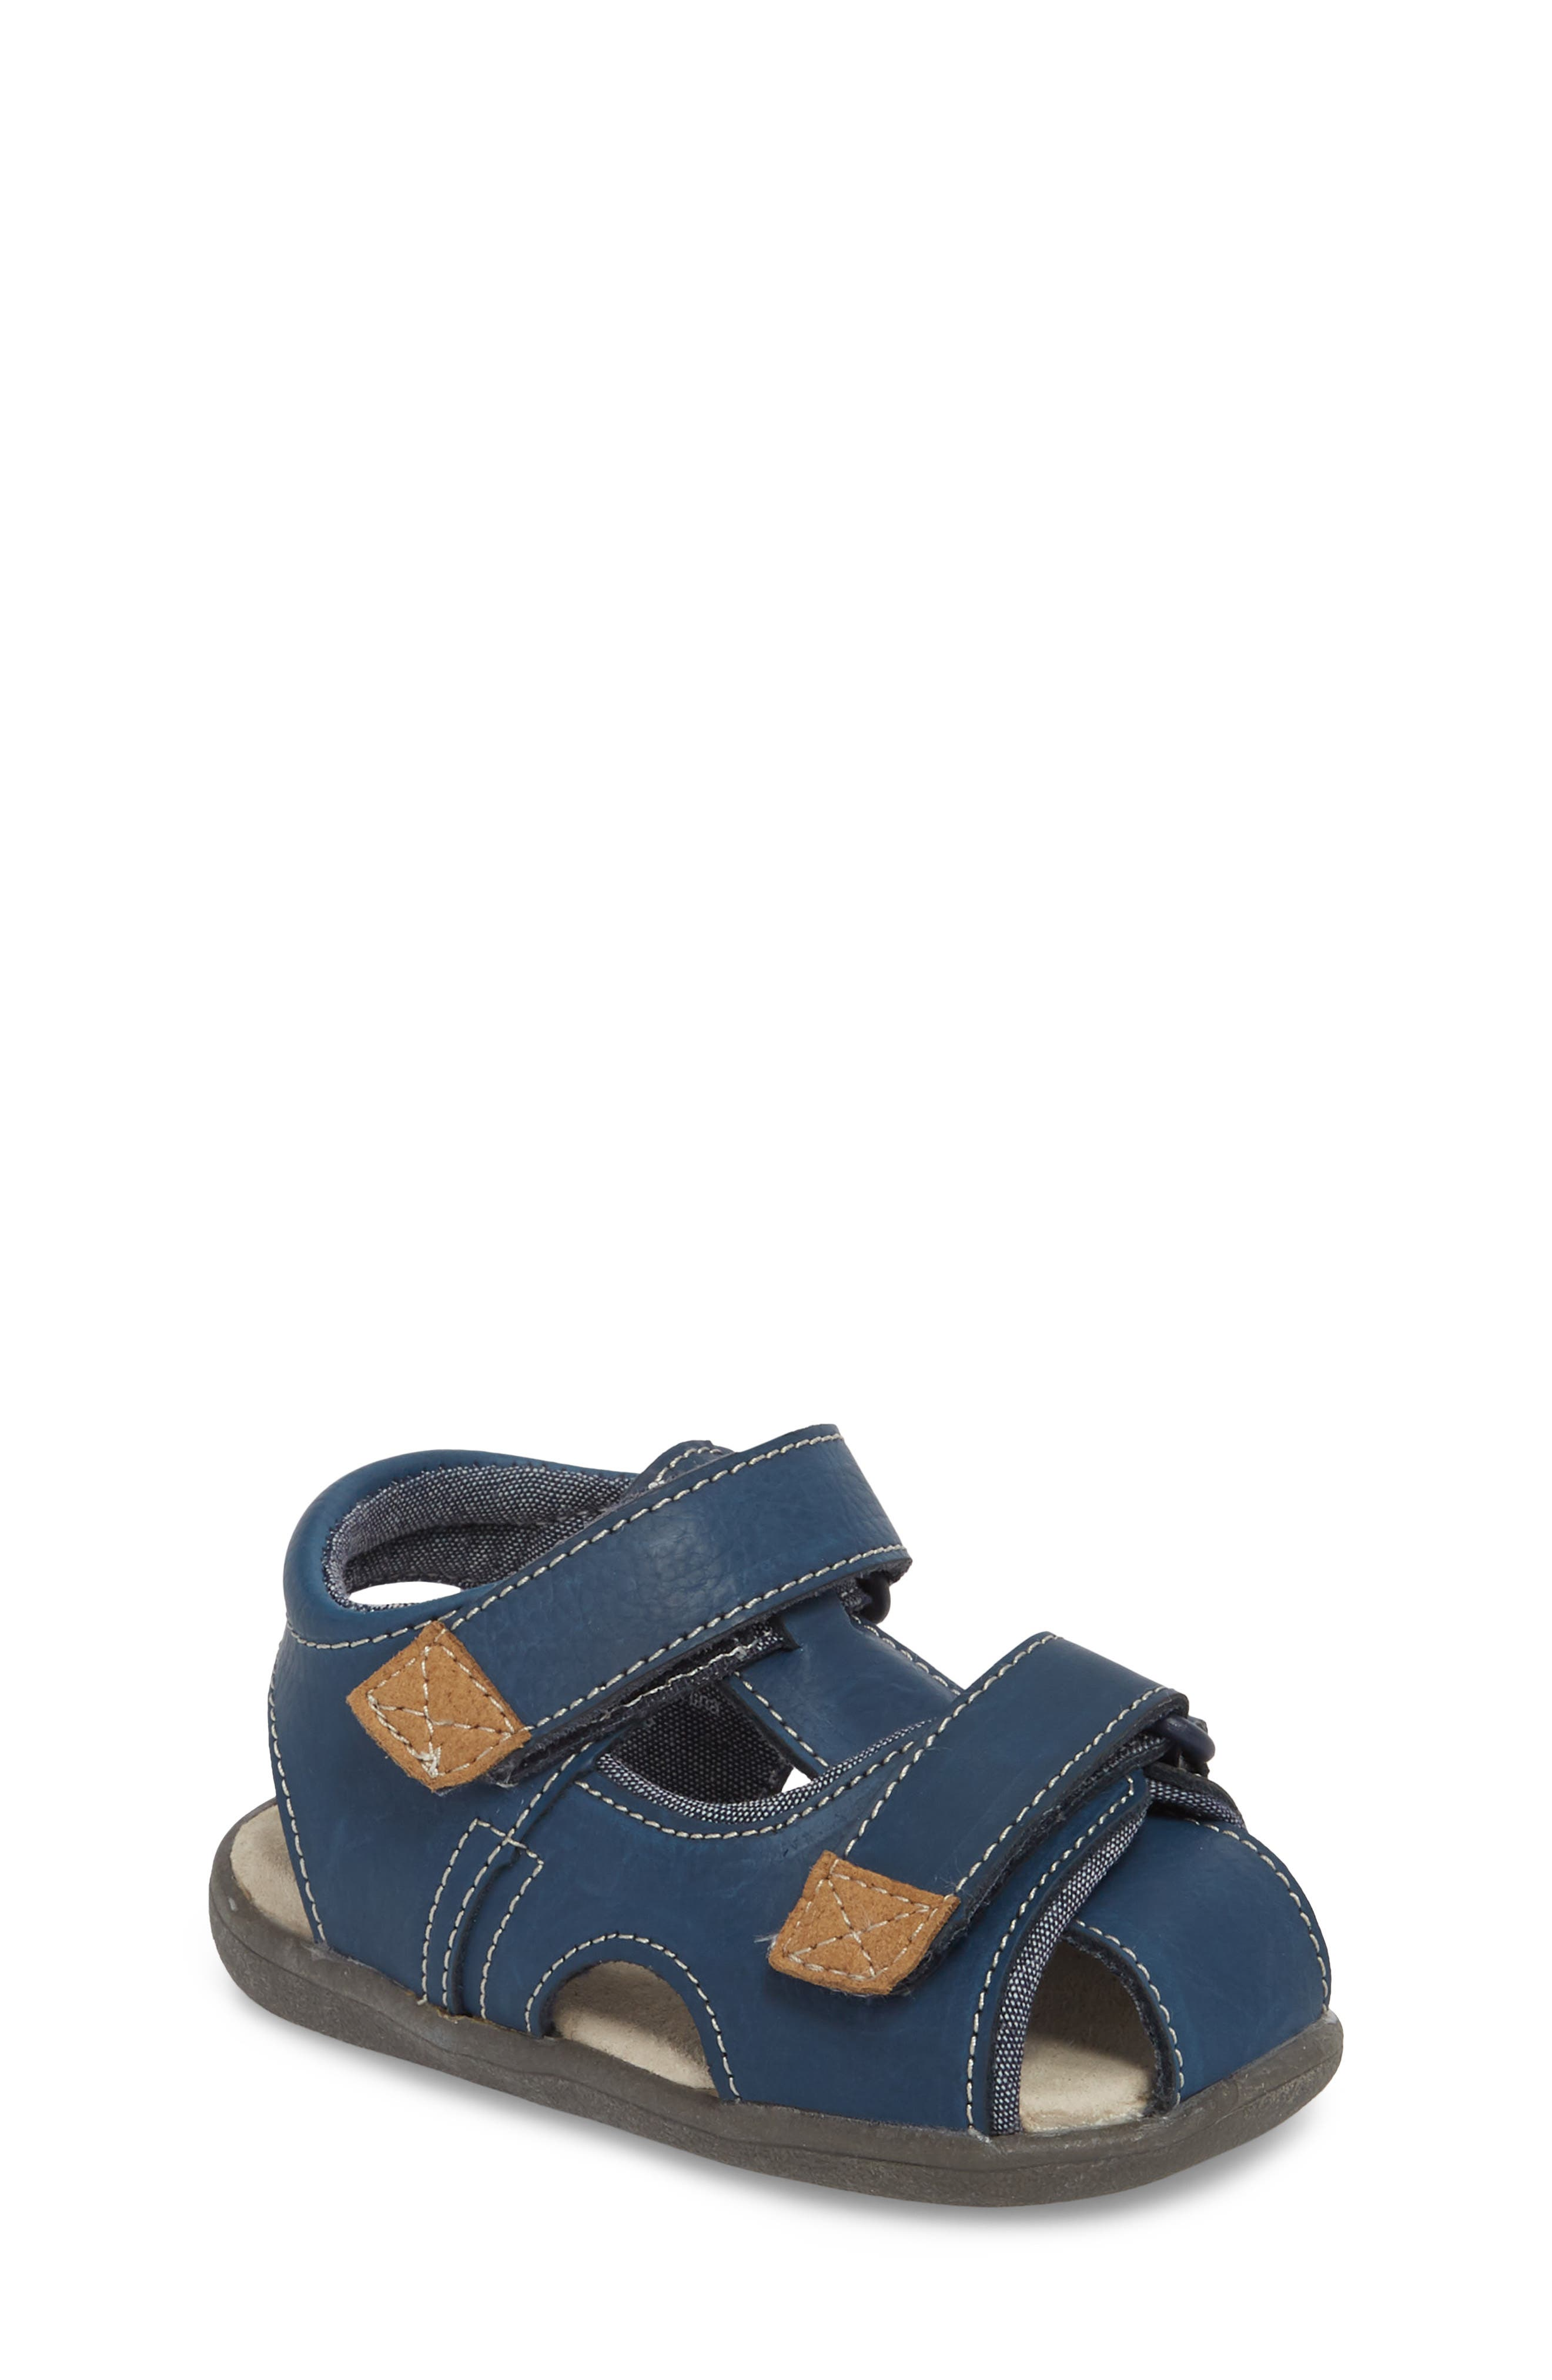 Corey Fisherman Sandal,                             Main thumbnail 1, color,                             400